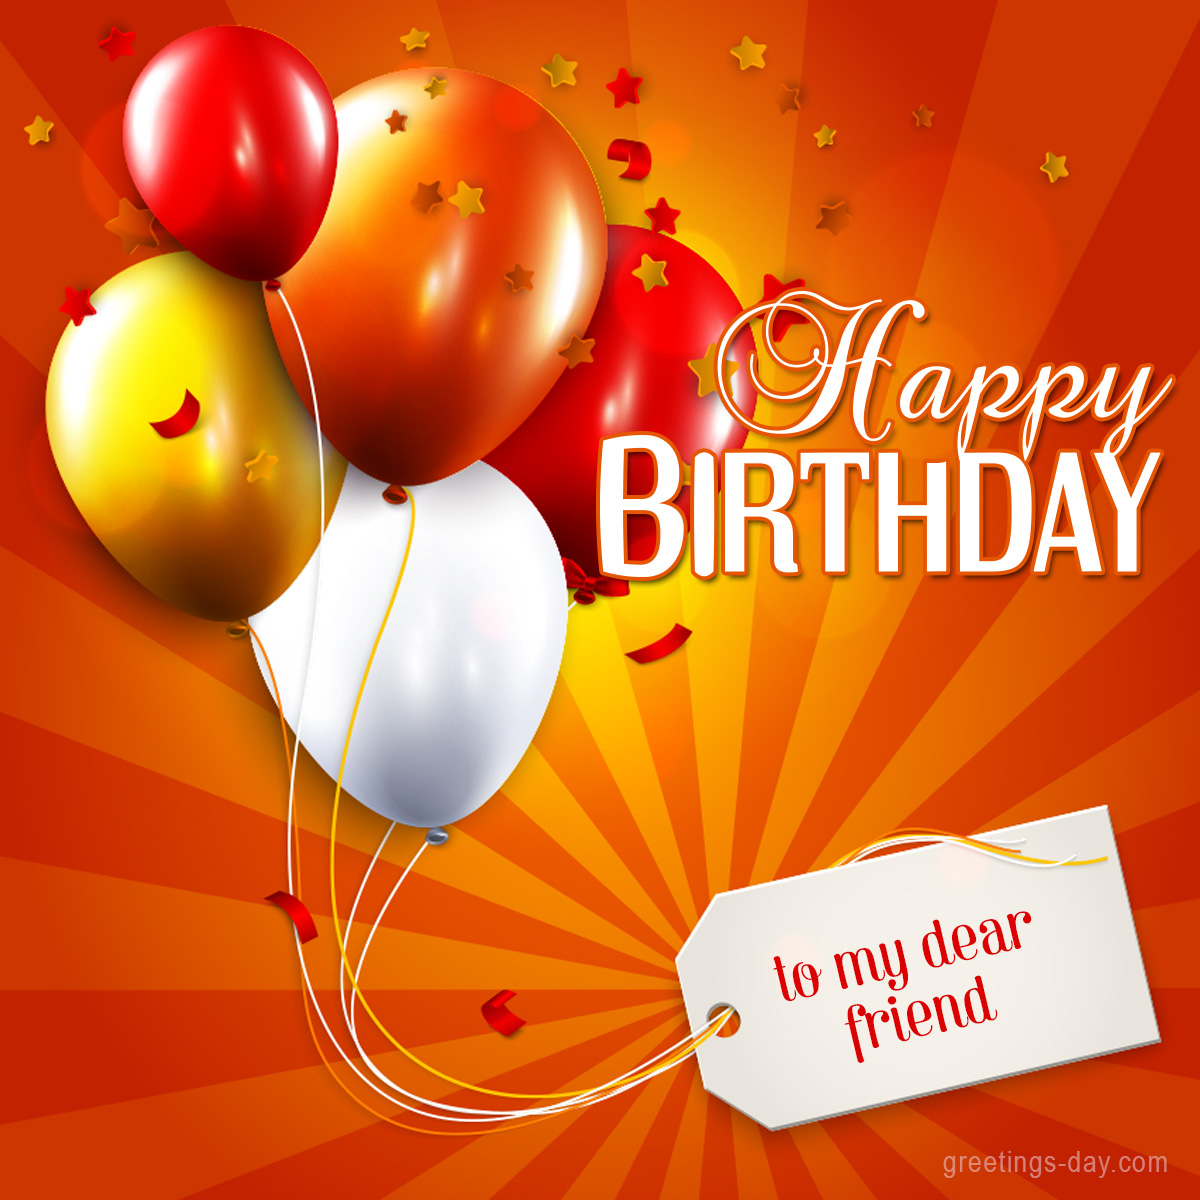 Greeting Cards For Every Day Happy Birthday To My Dear Friend